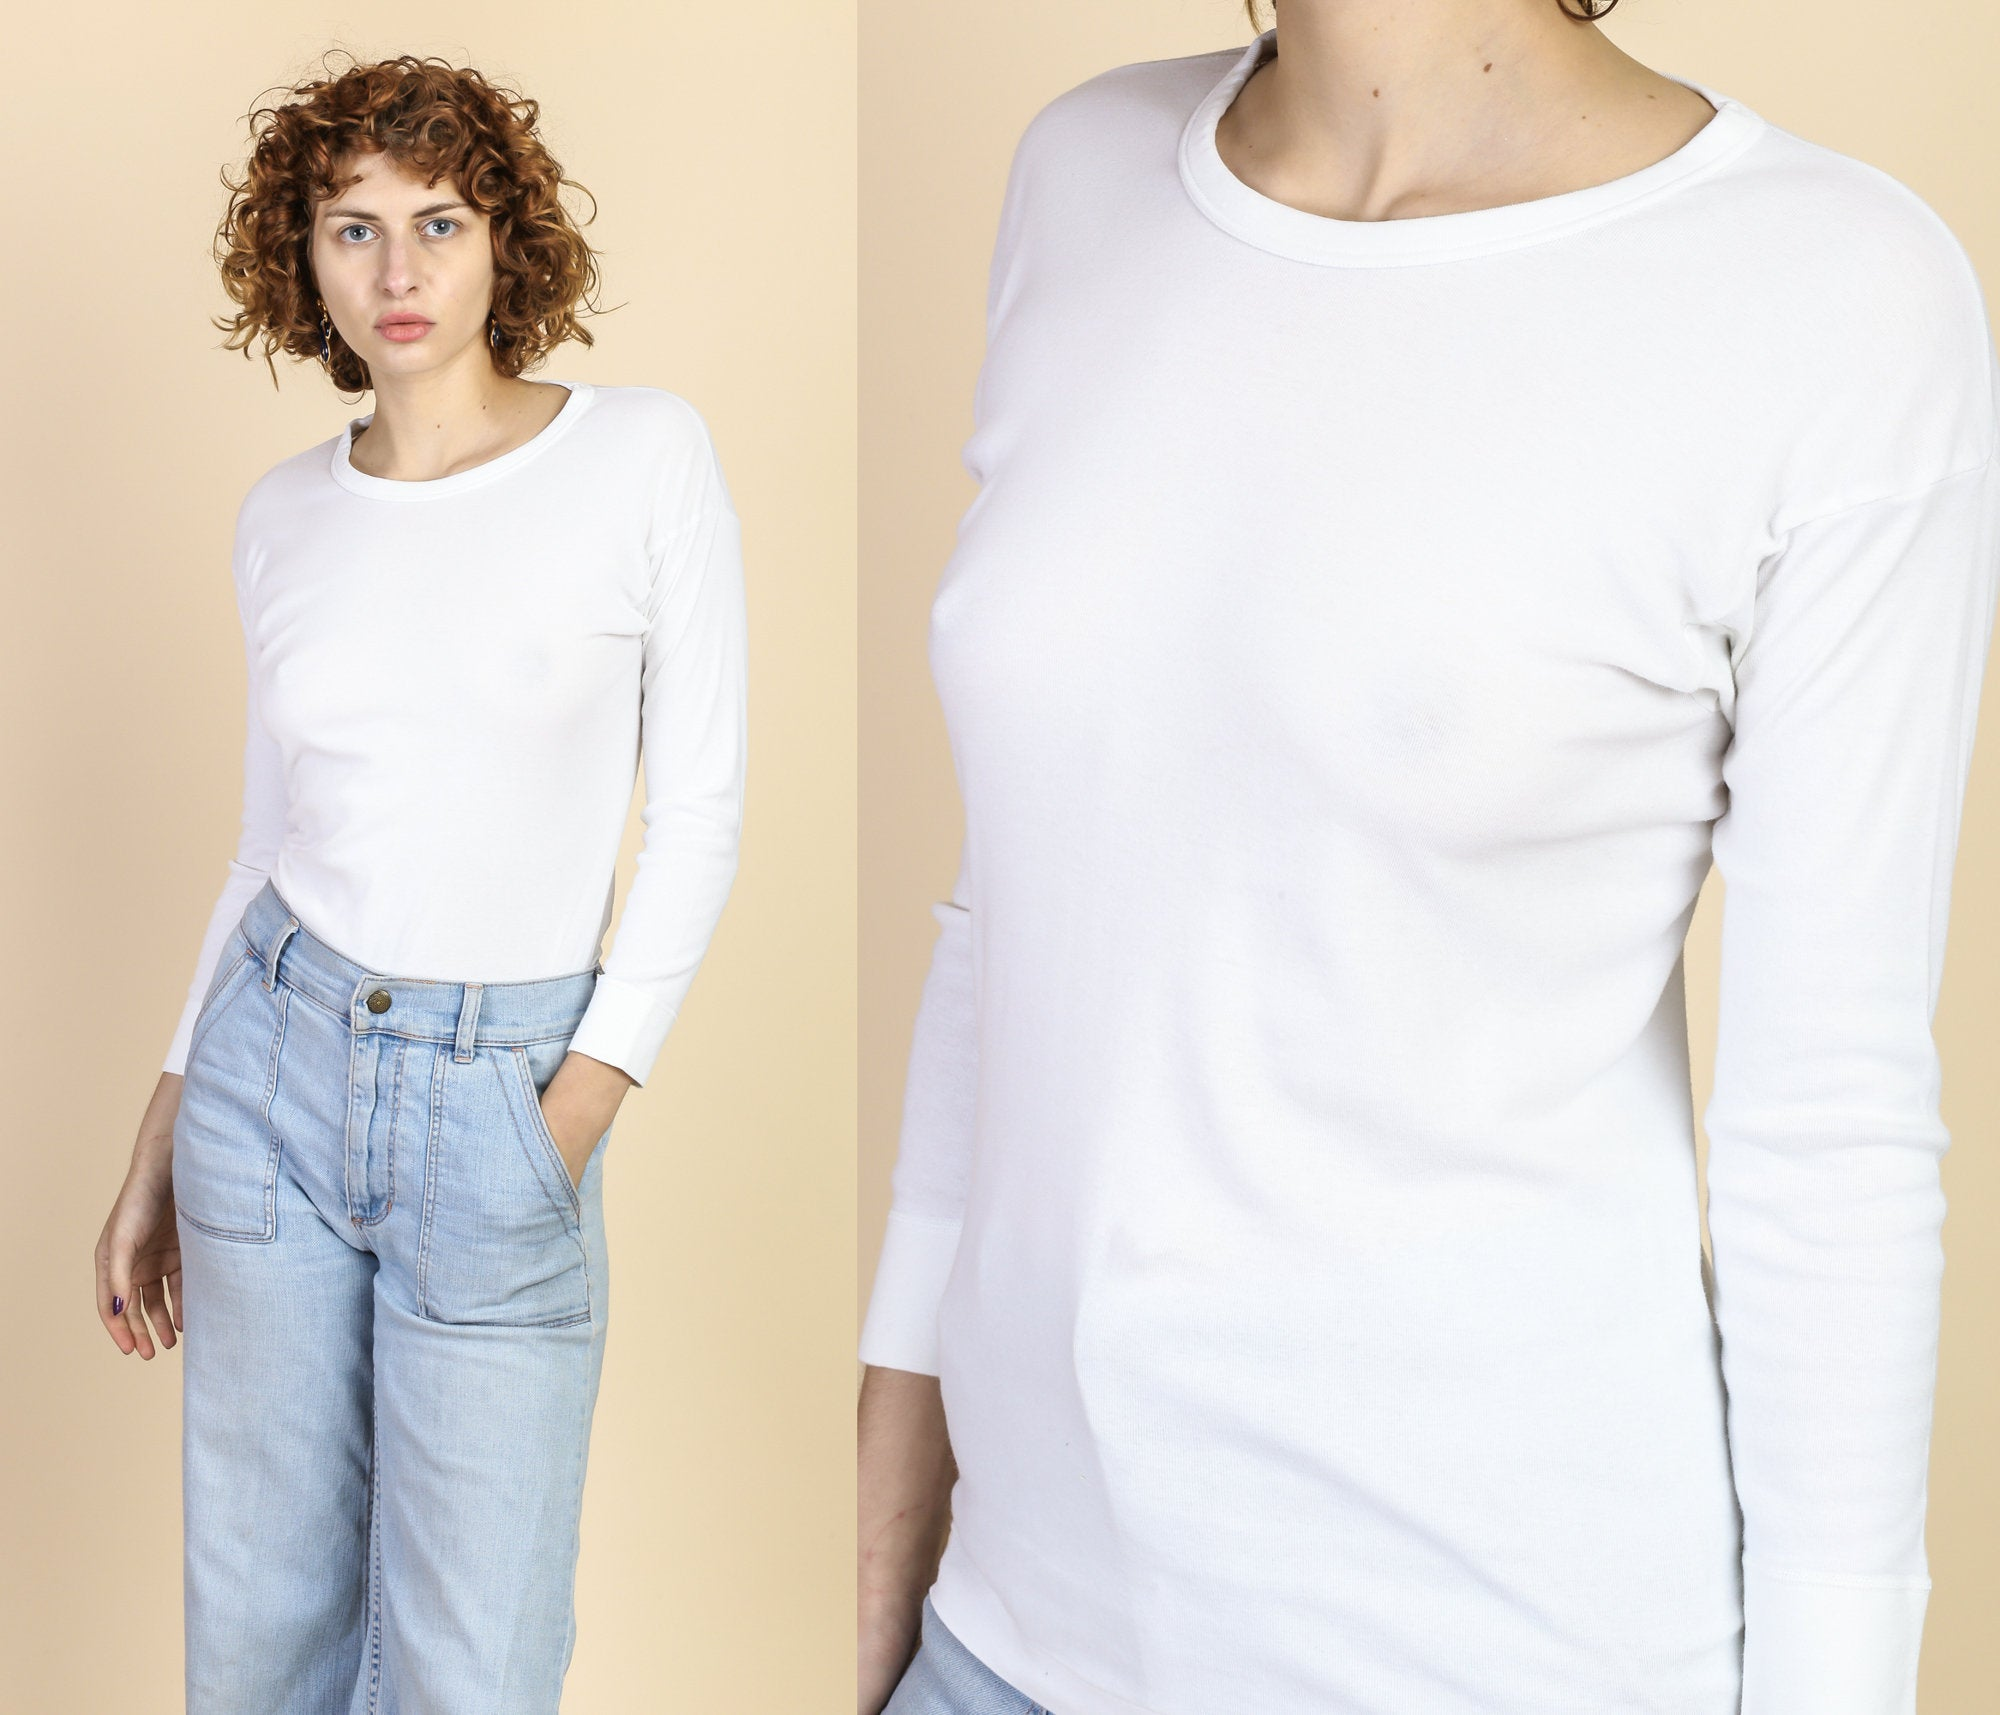 80s White Long Sleeved Shirt - Large